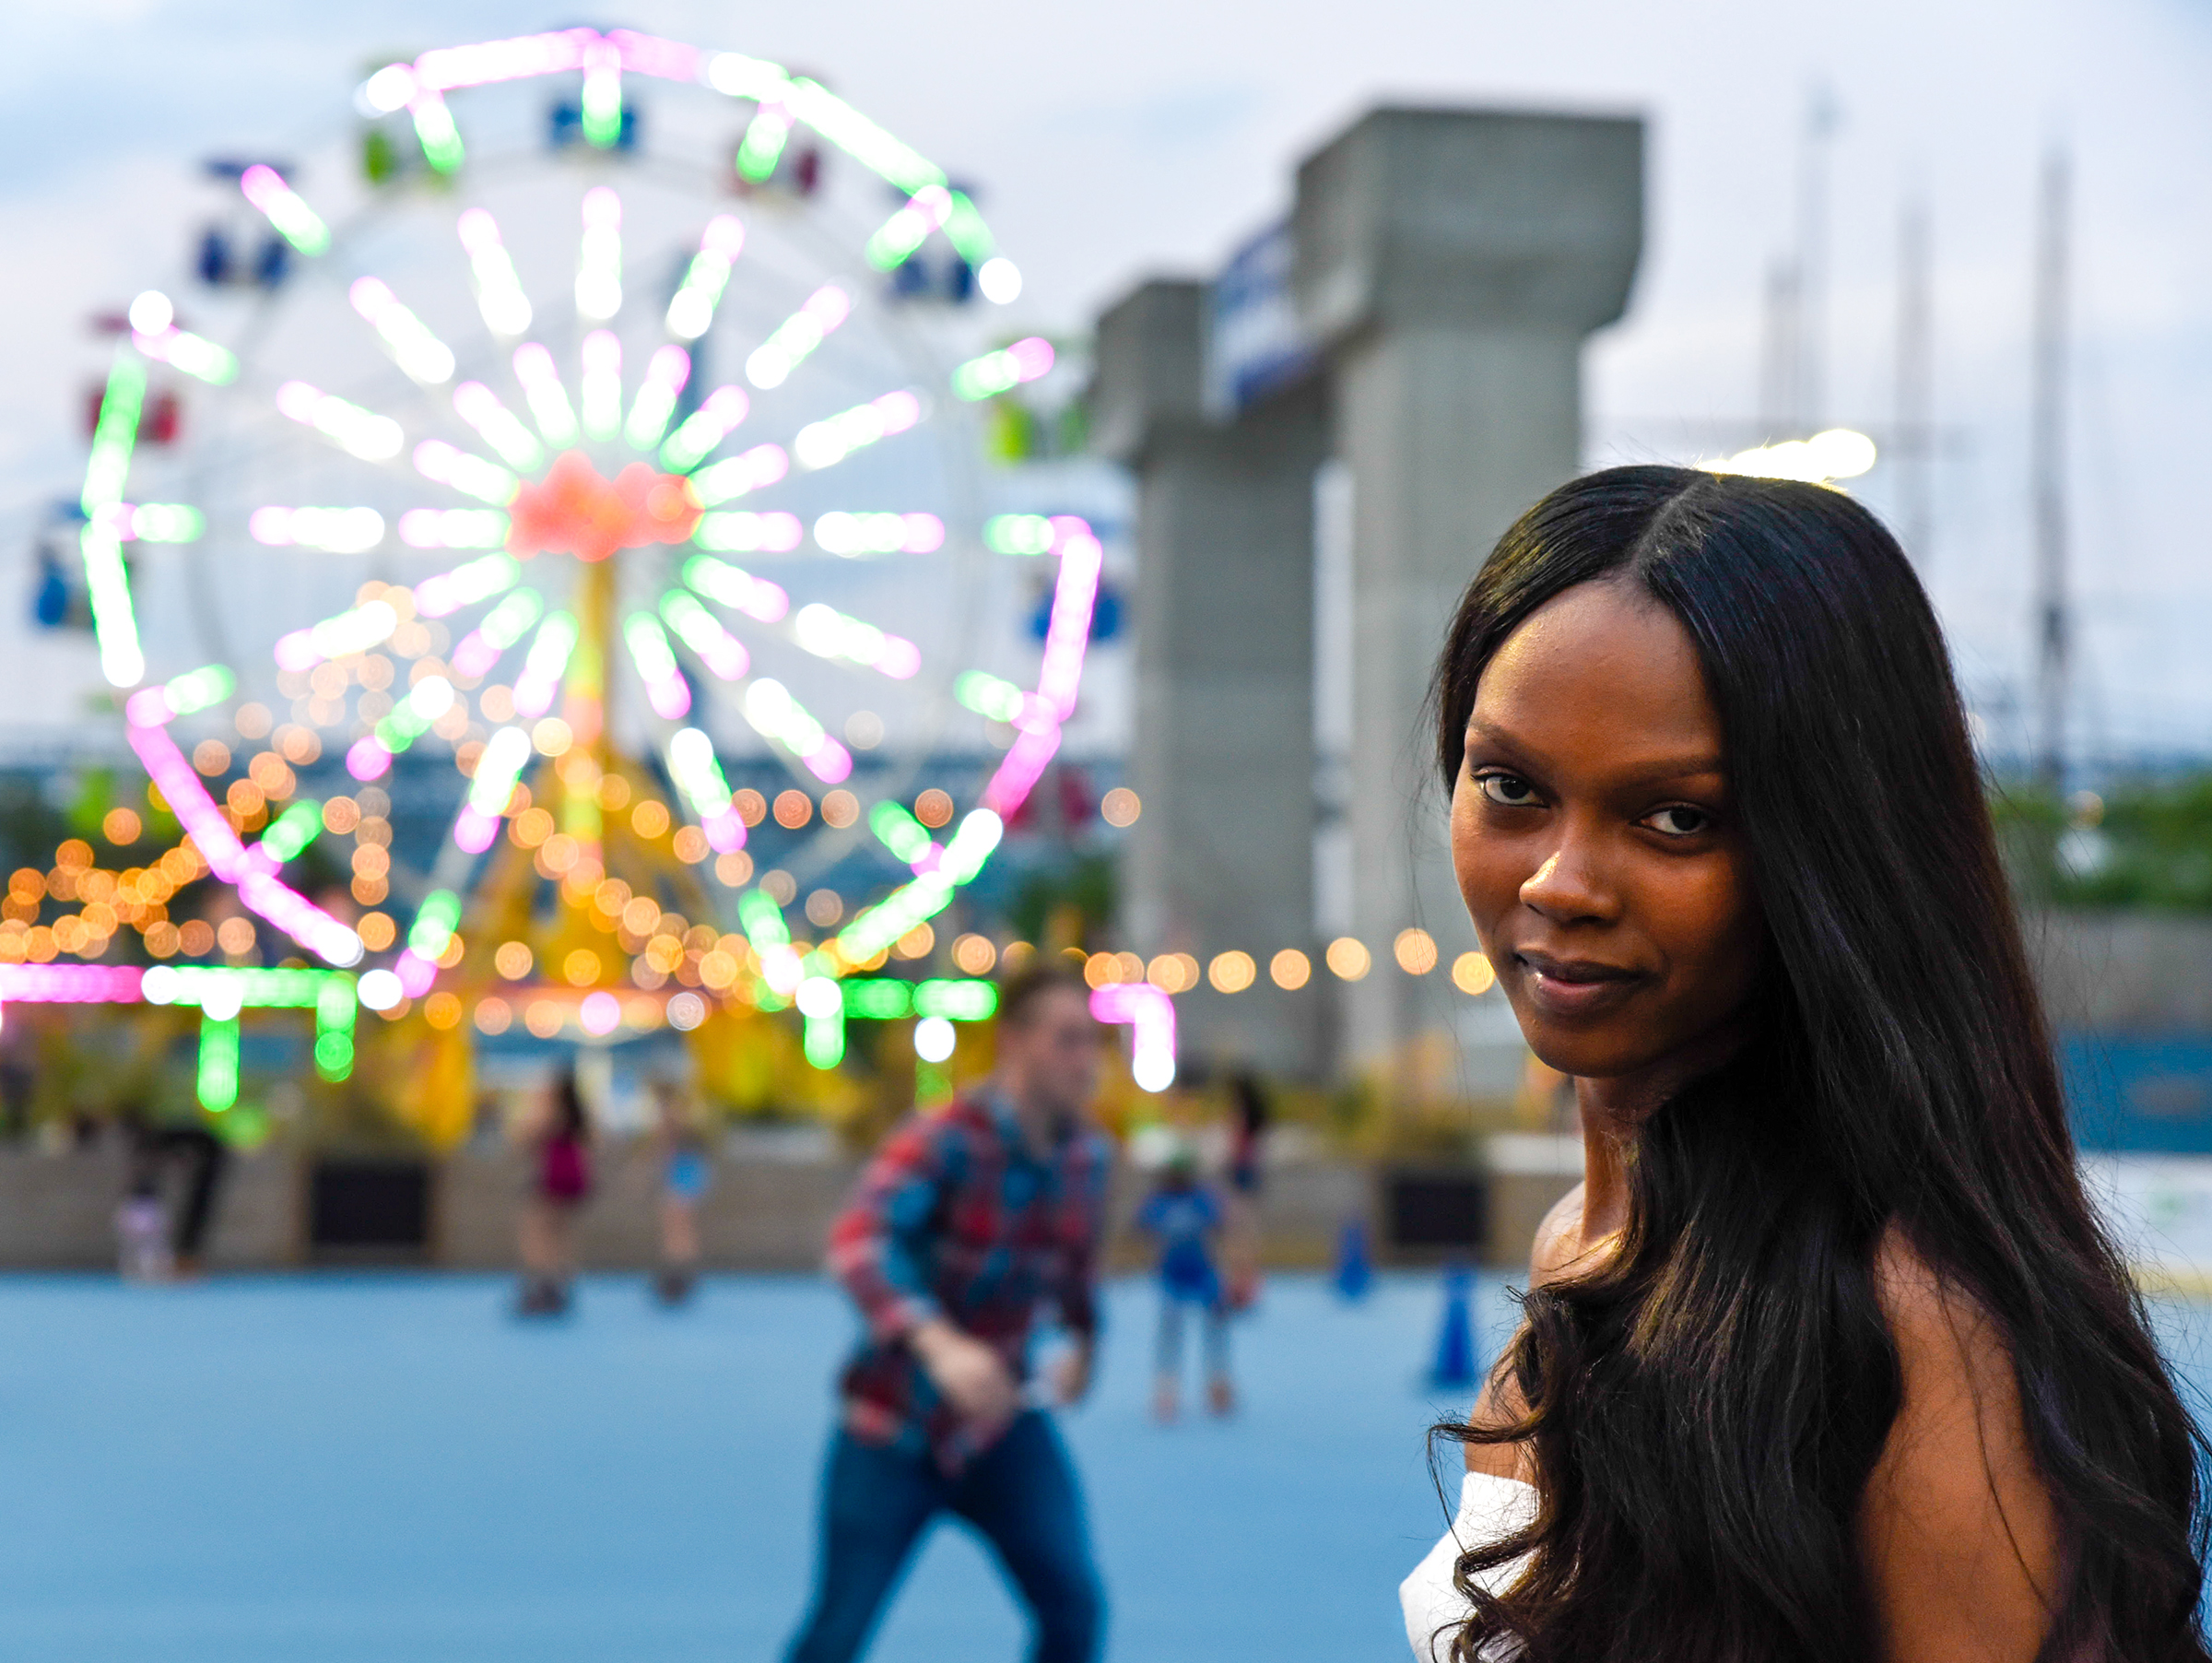 A woman pauses on the Summerfest roller skating rink at Penns Landing on July 11, 2018. / Brianna Spause.